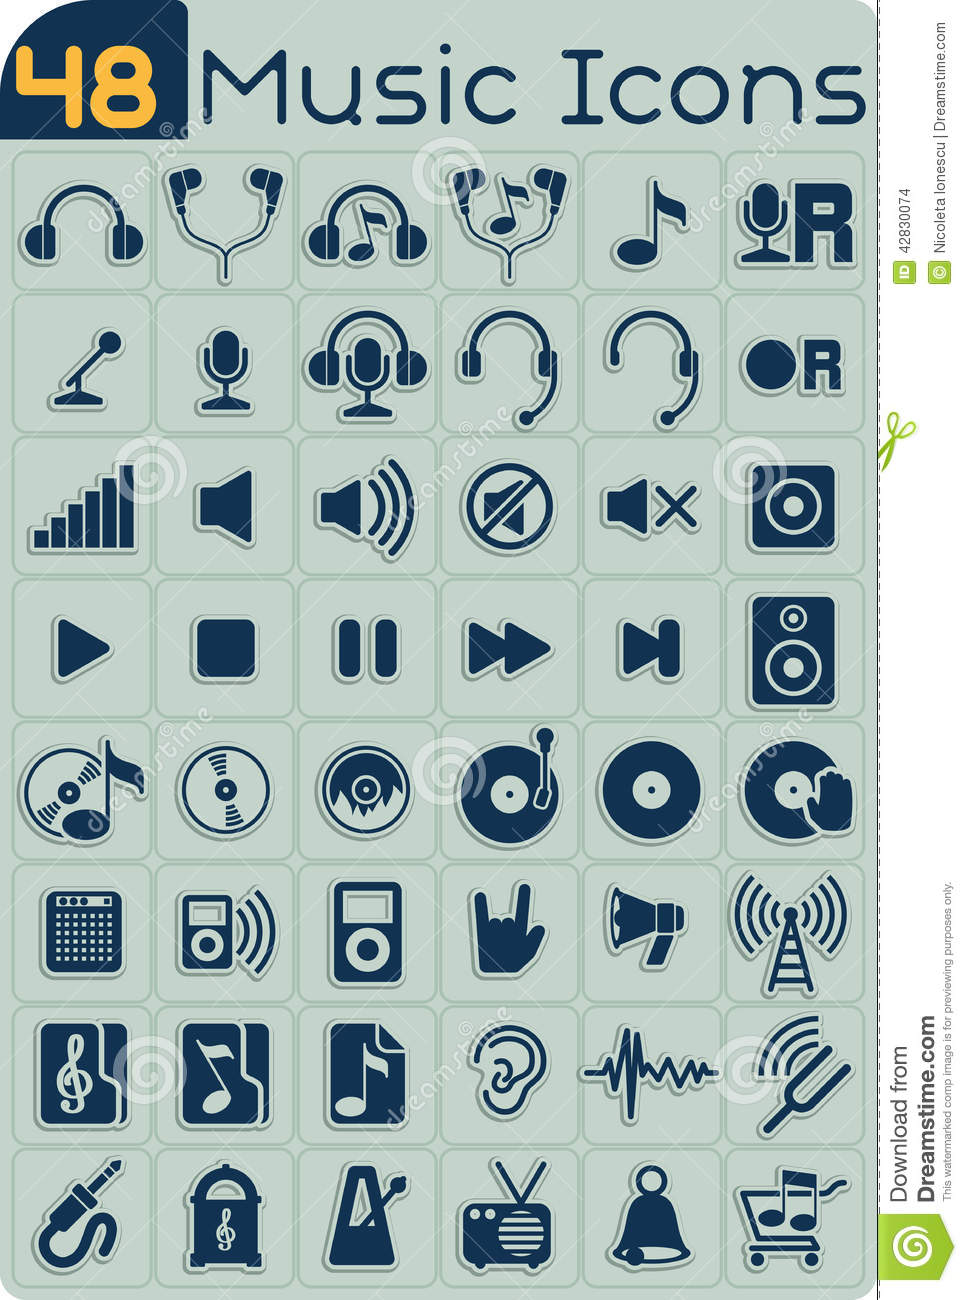 48 Music Icons Vector Set